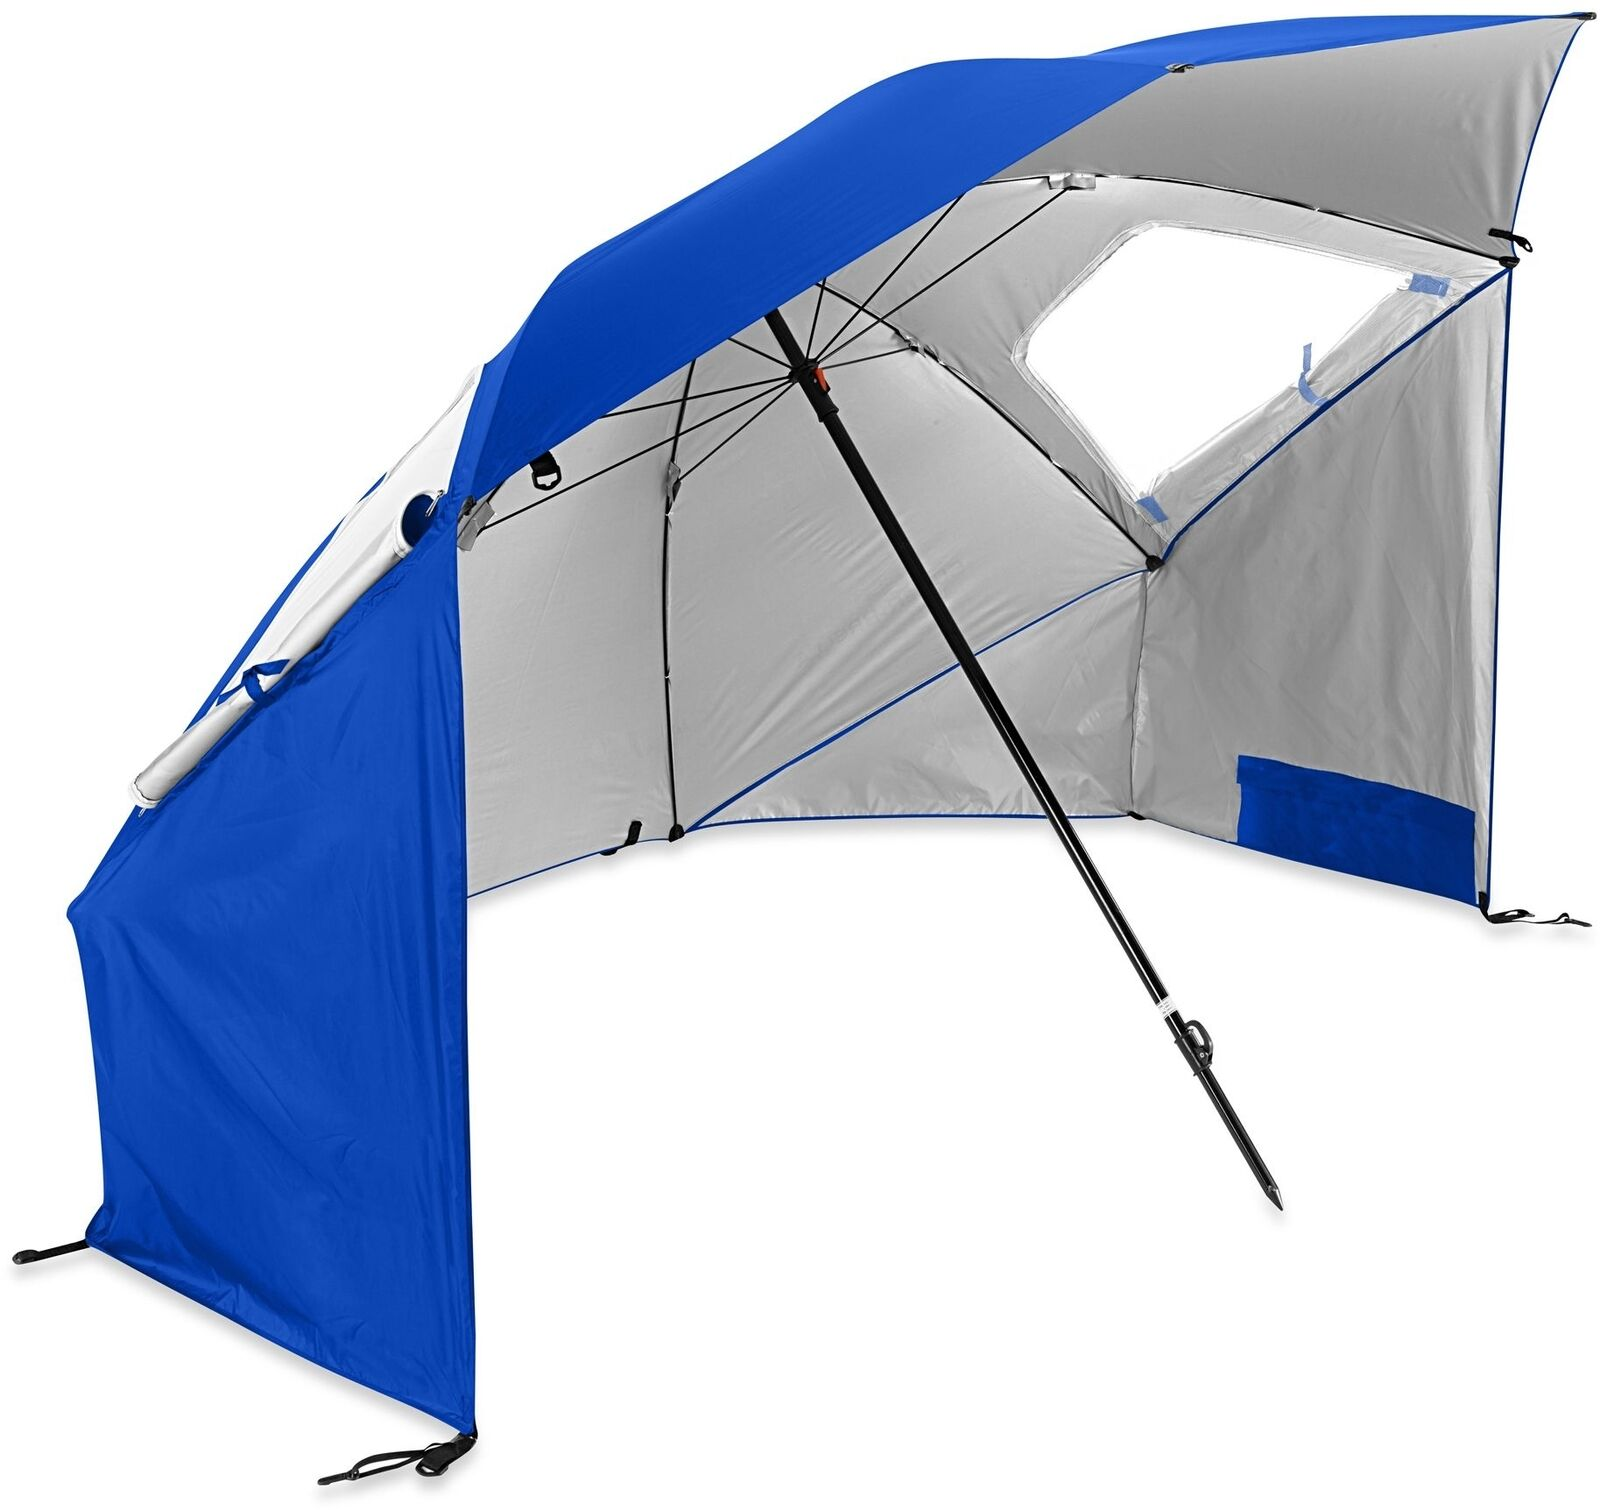 Outdoor  Portable Beach Umbrella Tent Sun Wind Shelter Shade UV Predect in bluee  not to be missed!